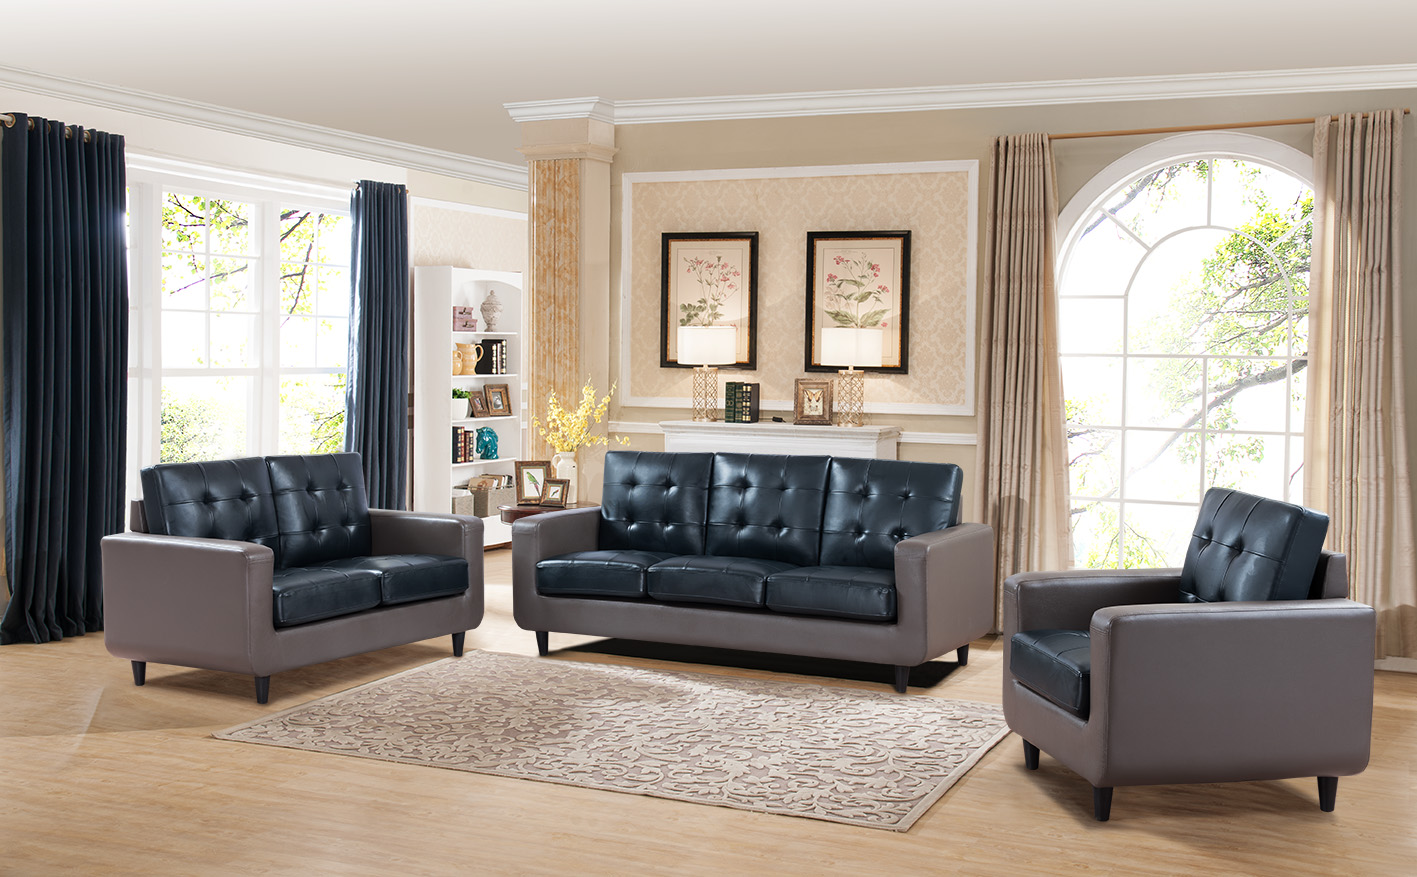 beautiful living room furniture set bedroom and deals modern dual tone grey blue color tufted back couch 3pcs sofa loveseat chair plush cushion walmart com